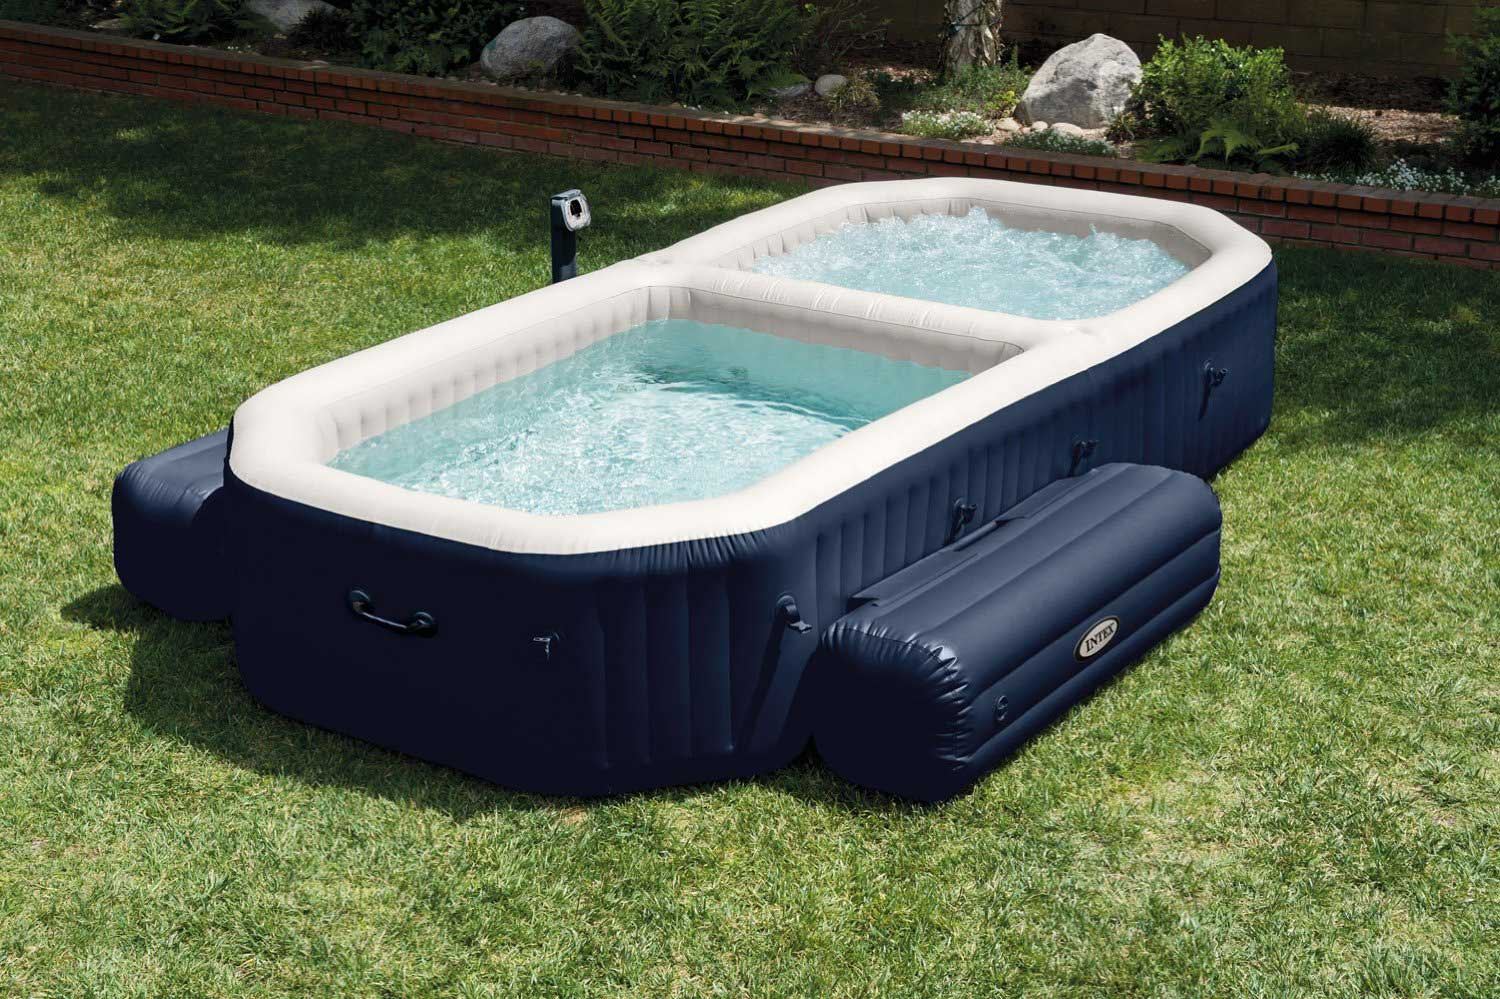 Intex Purespa Bubble Hot Tub And Pool Set Review Best Inflatable Hot Tub Center